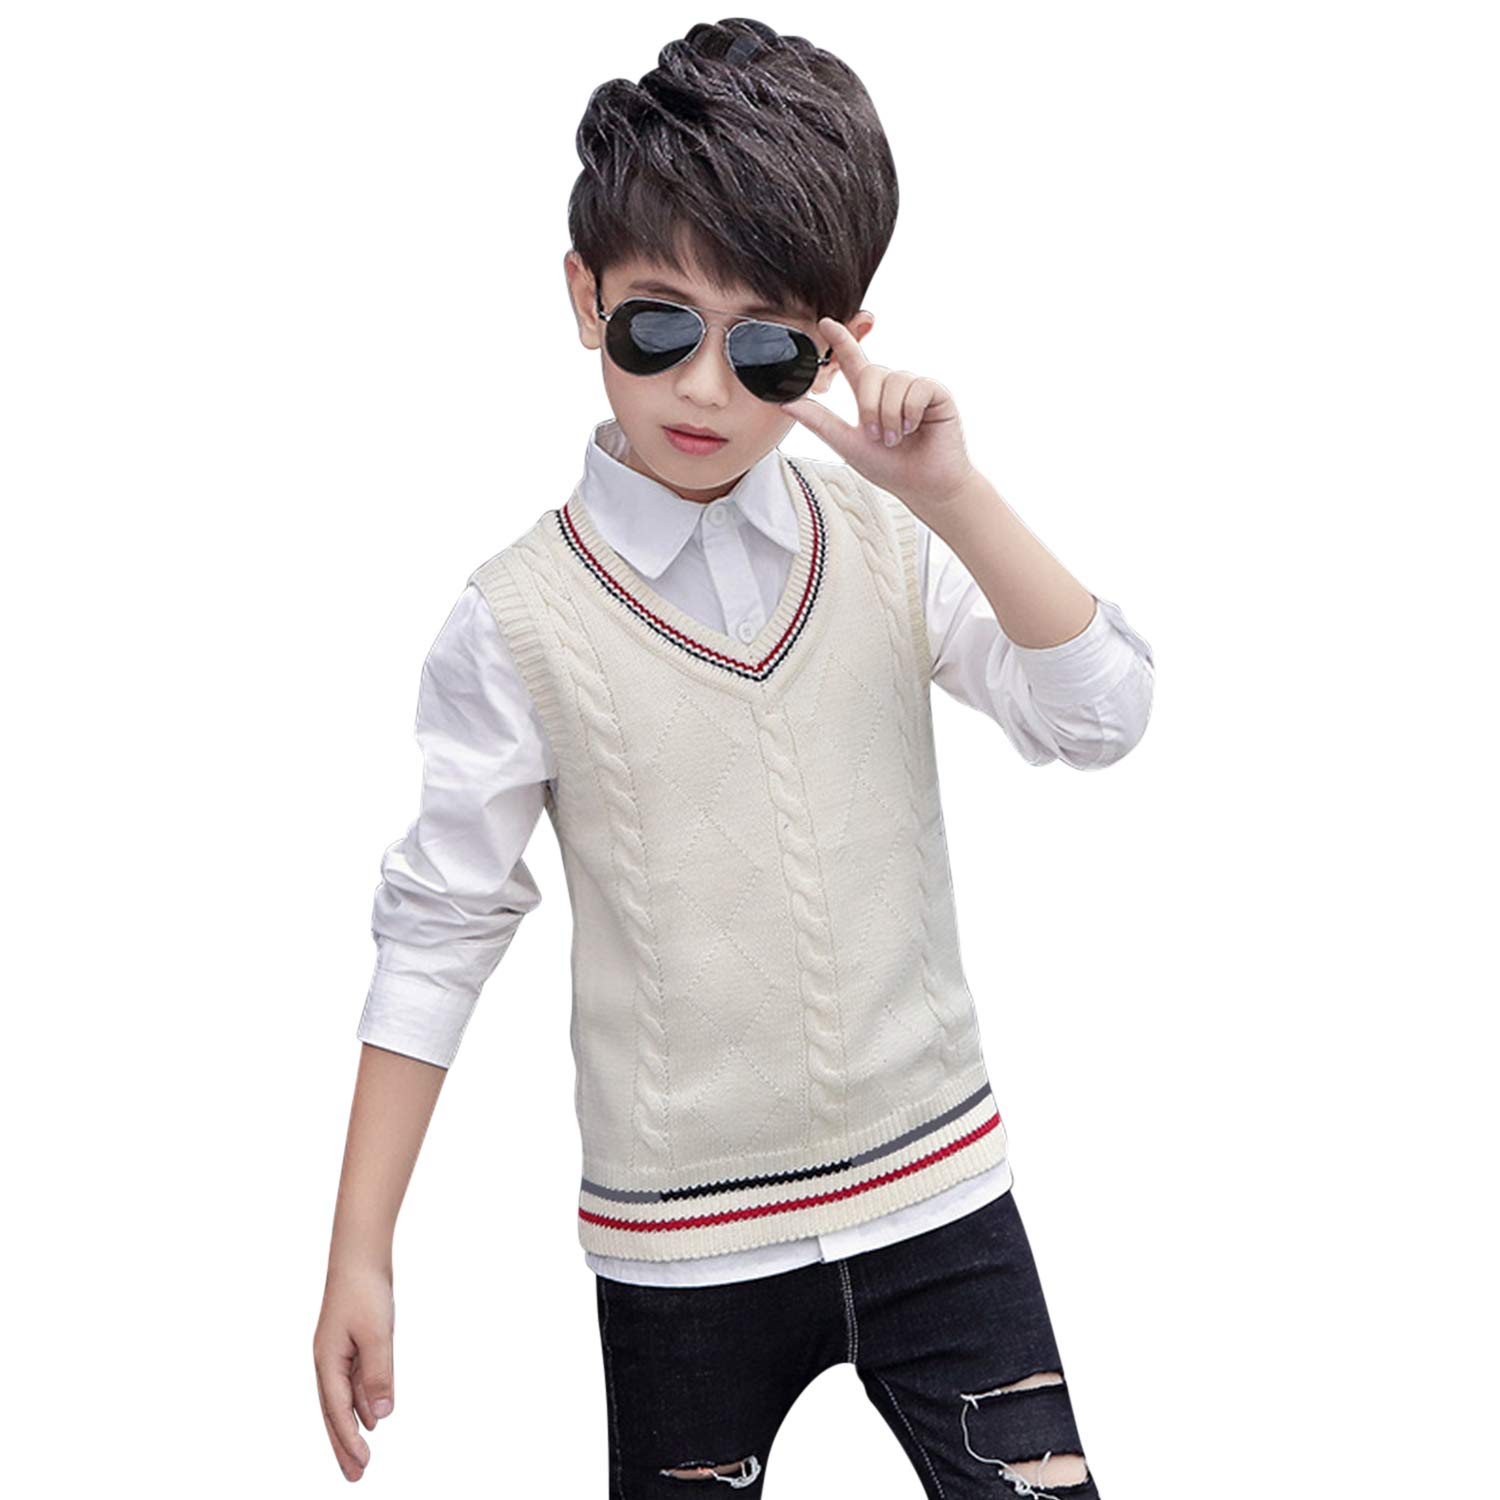 De feuilles Kids Boys Knit Vest Sleeveless Knitwear School Tank Top Sweater